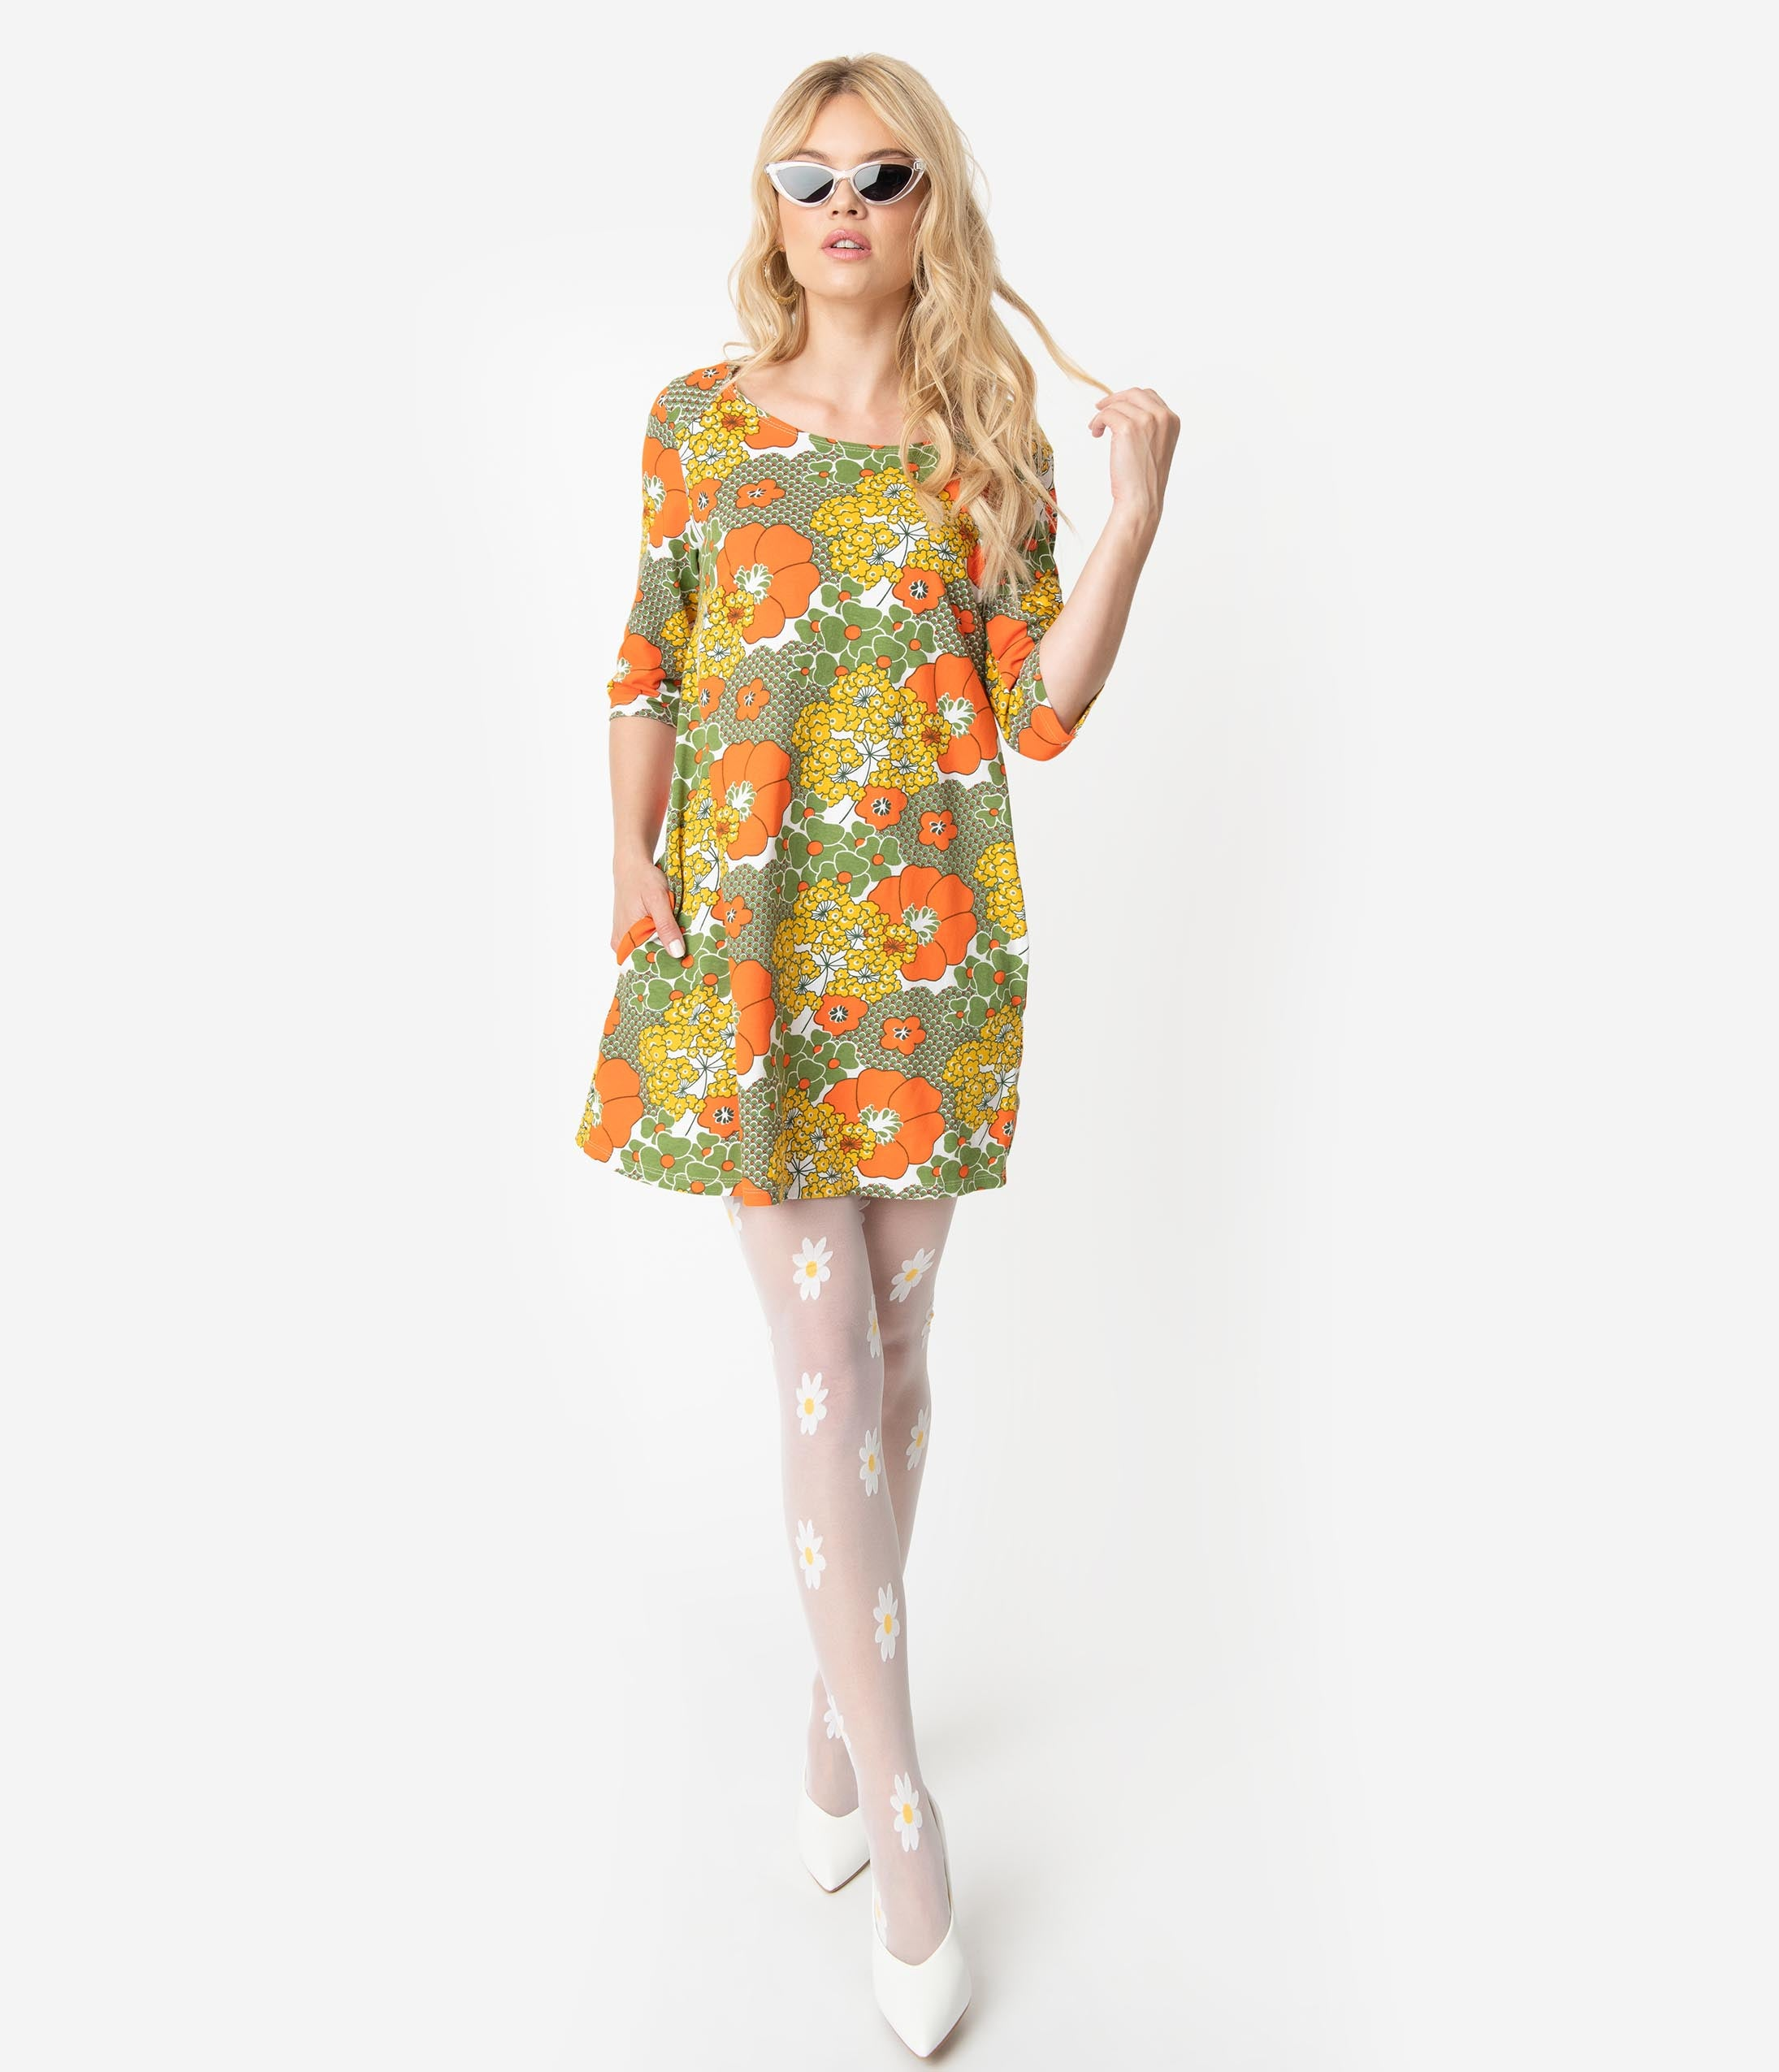 92fb56cf65 50 Vintage Inspired Clothing Stores 1960S Style Olive Green Orange Retro  Floral Print Cotton Tunic Dress